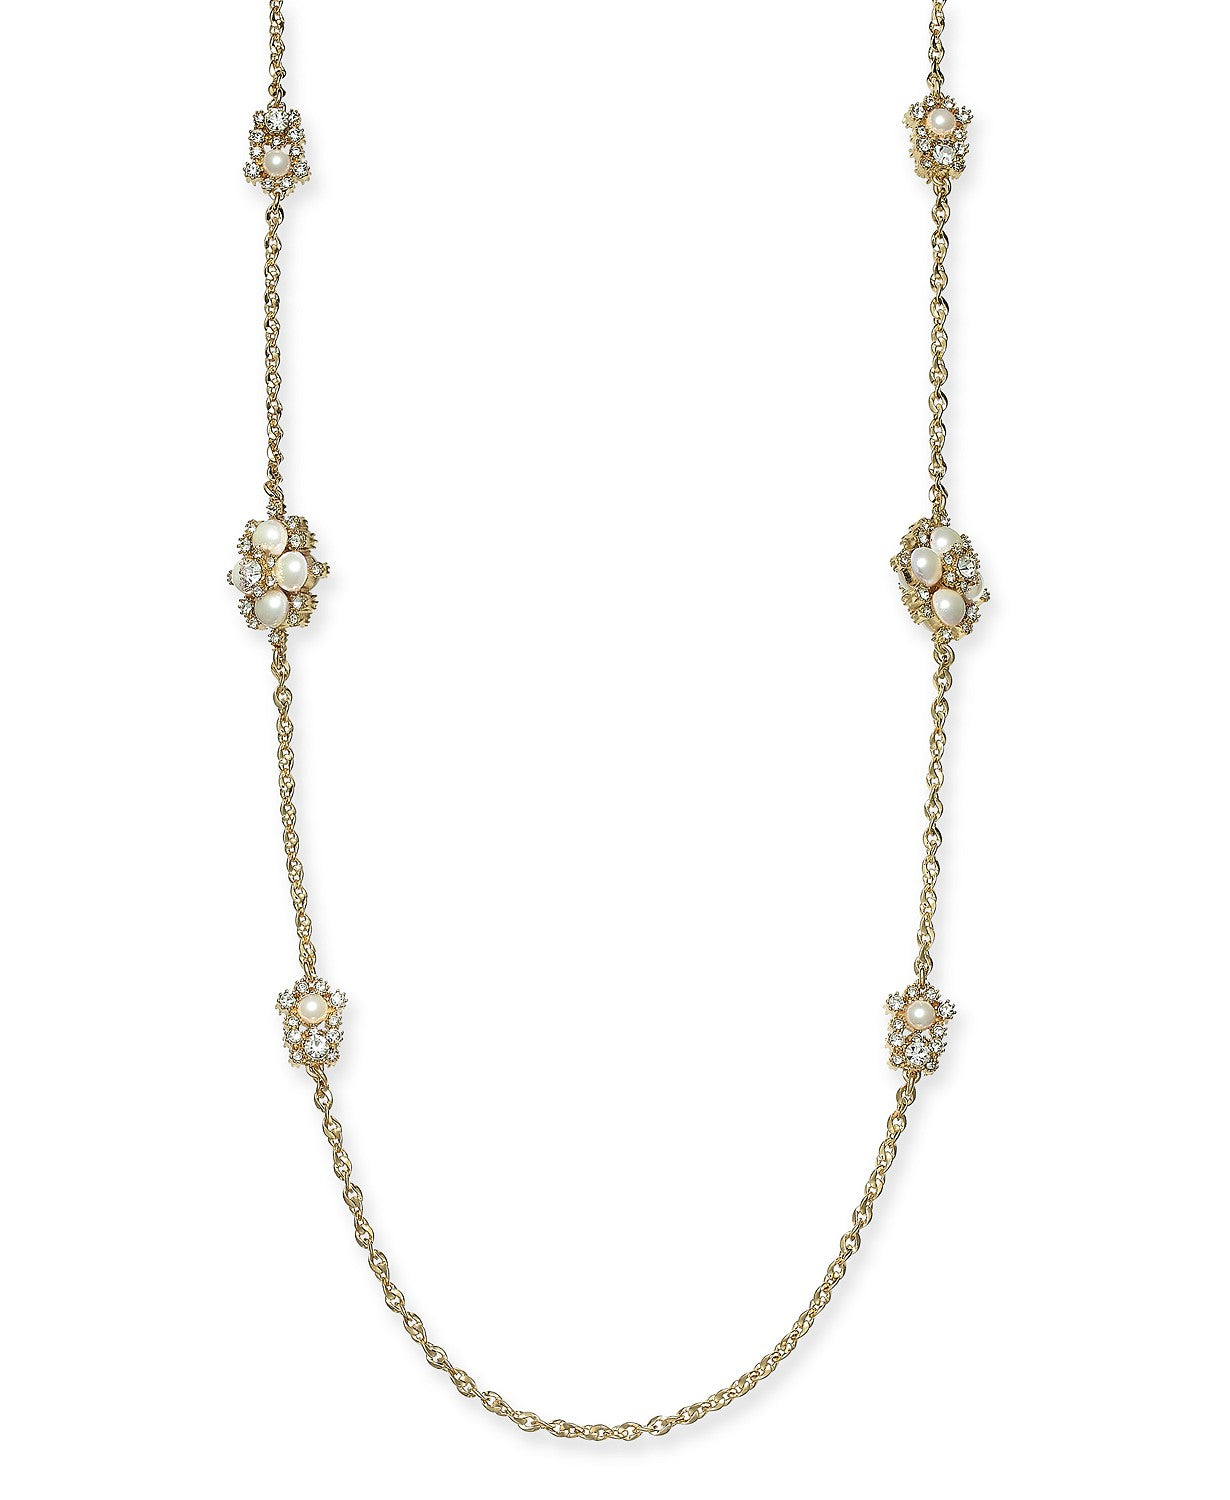 "Charter Club Gold-Tone Crystal & Imitation Pearl Cluster Collar Necklace, 18"" + 2"" extender"